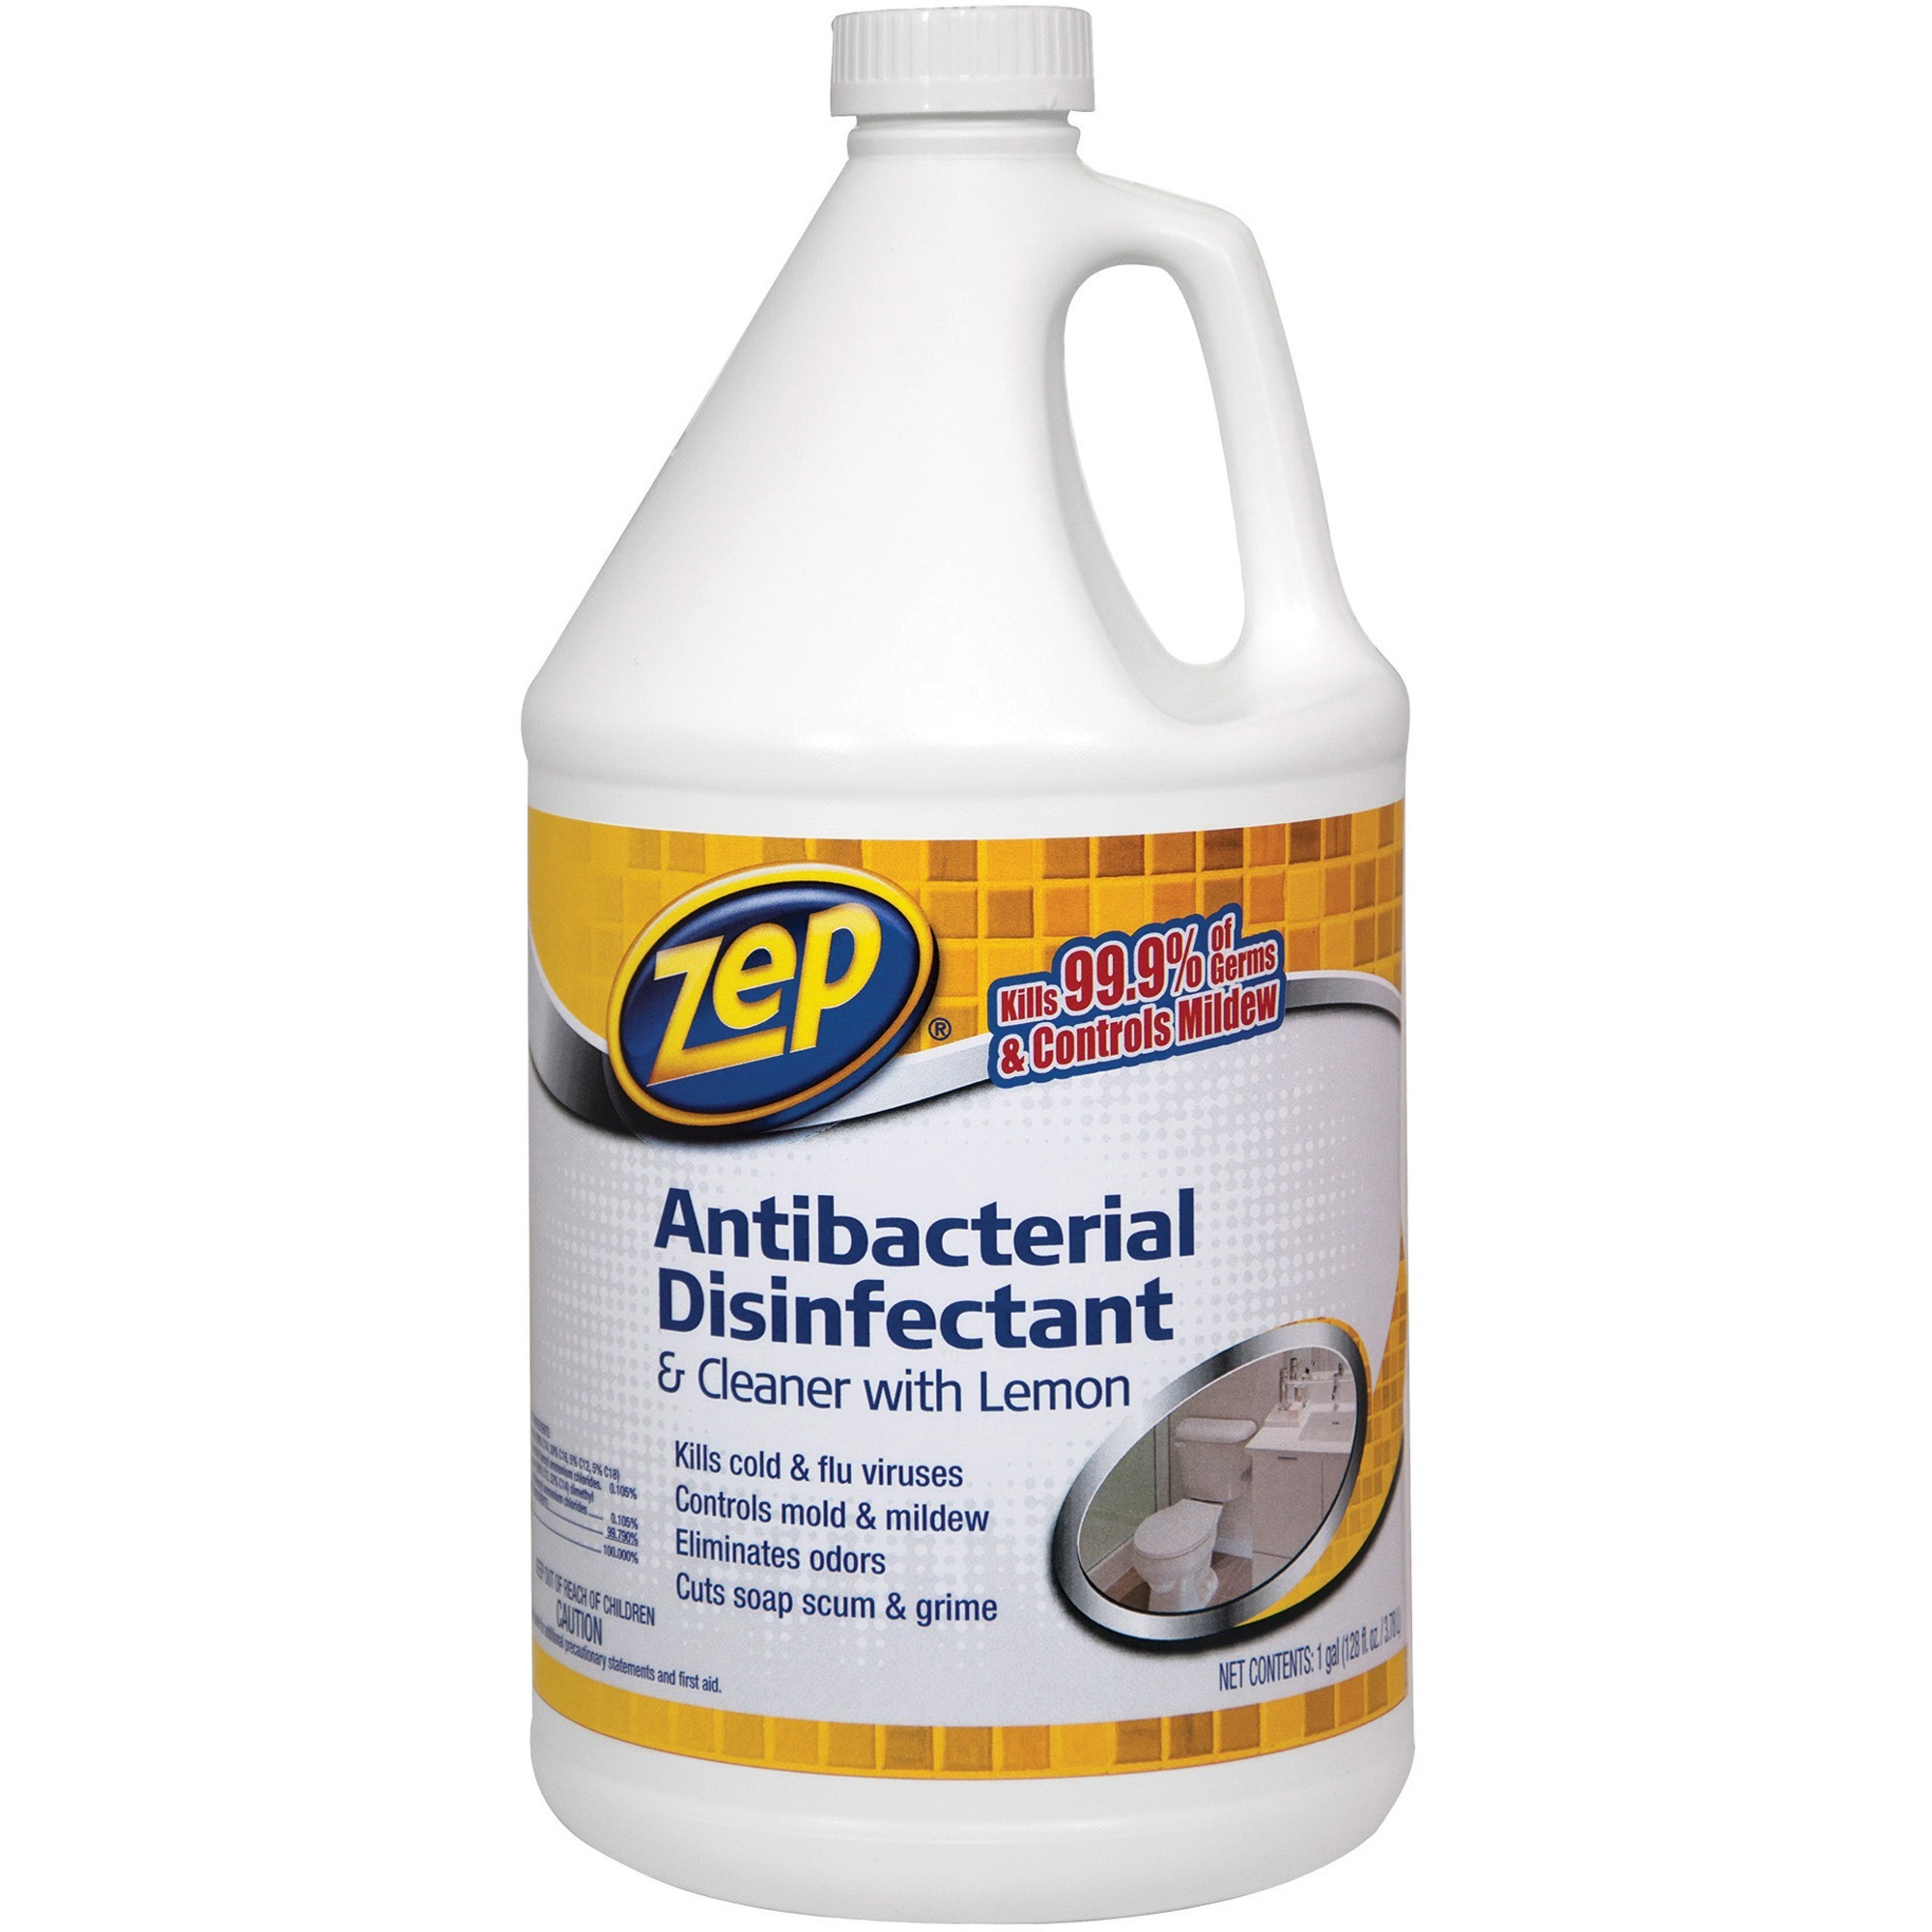 Zep Commercial, ZPE1041688, Lemon Antibacterial Disinfectant Cleaner, 1 Each, Clear